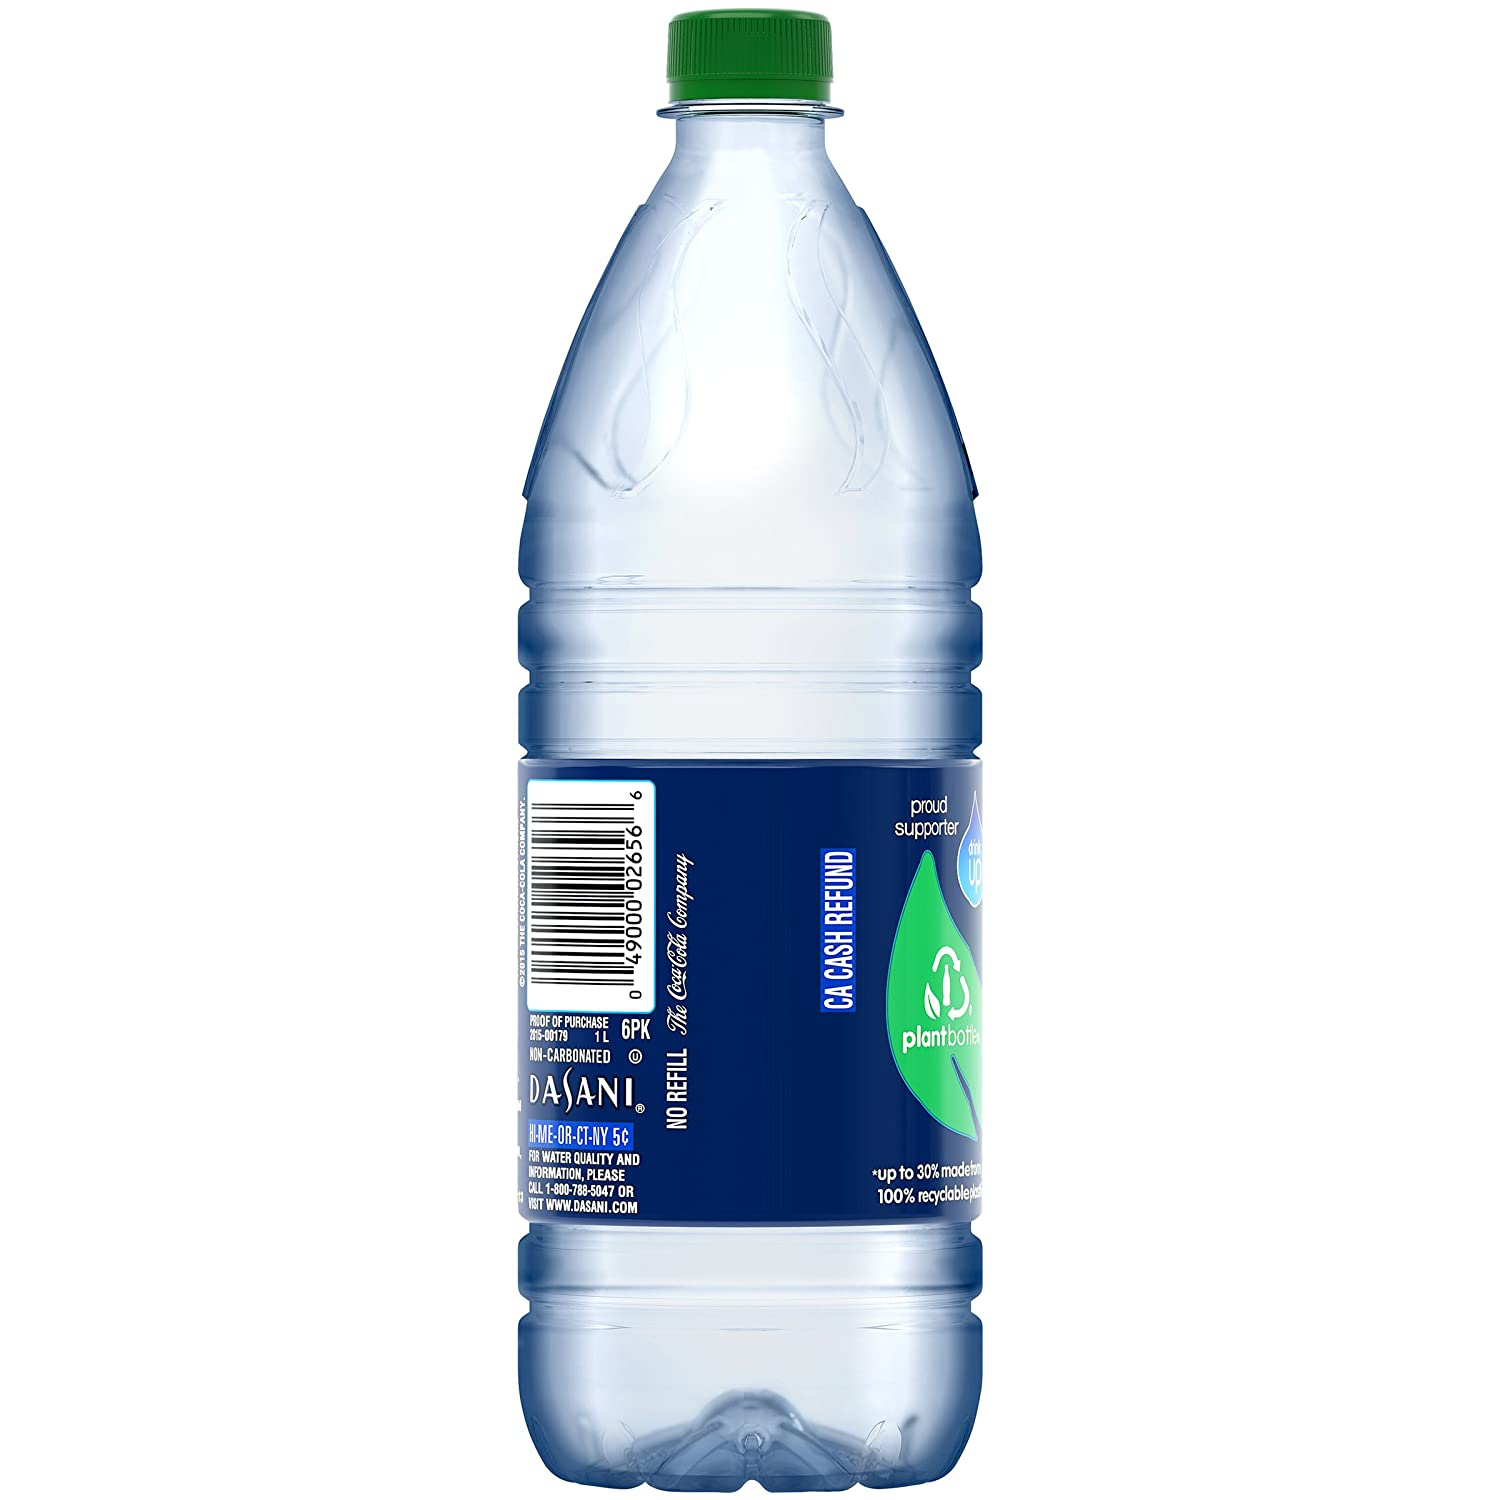 DASANI Purified Water Bottle Enhanced with Minerals, 1 Liter: Amazon.com:  Grocery & Gourmet Food